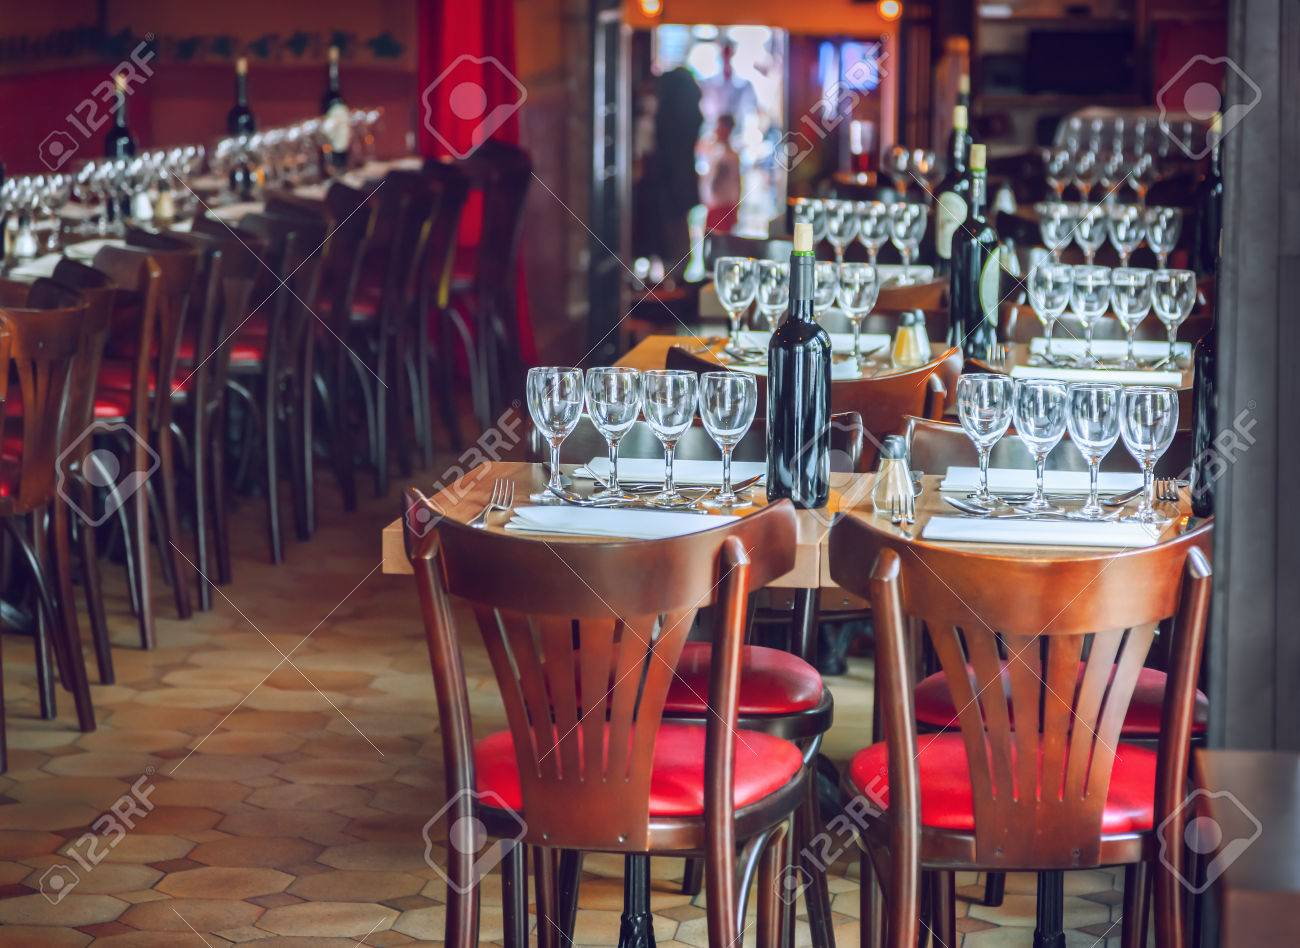 Traditional restaurant interior with tables and chairs - 46425131